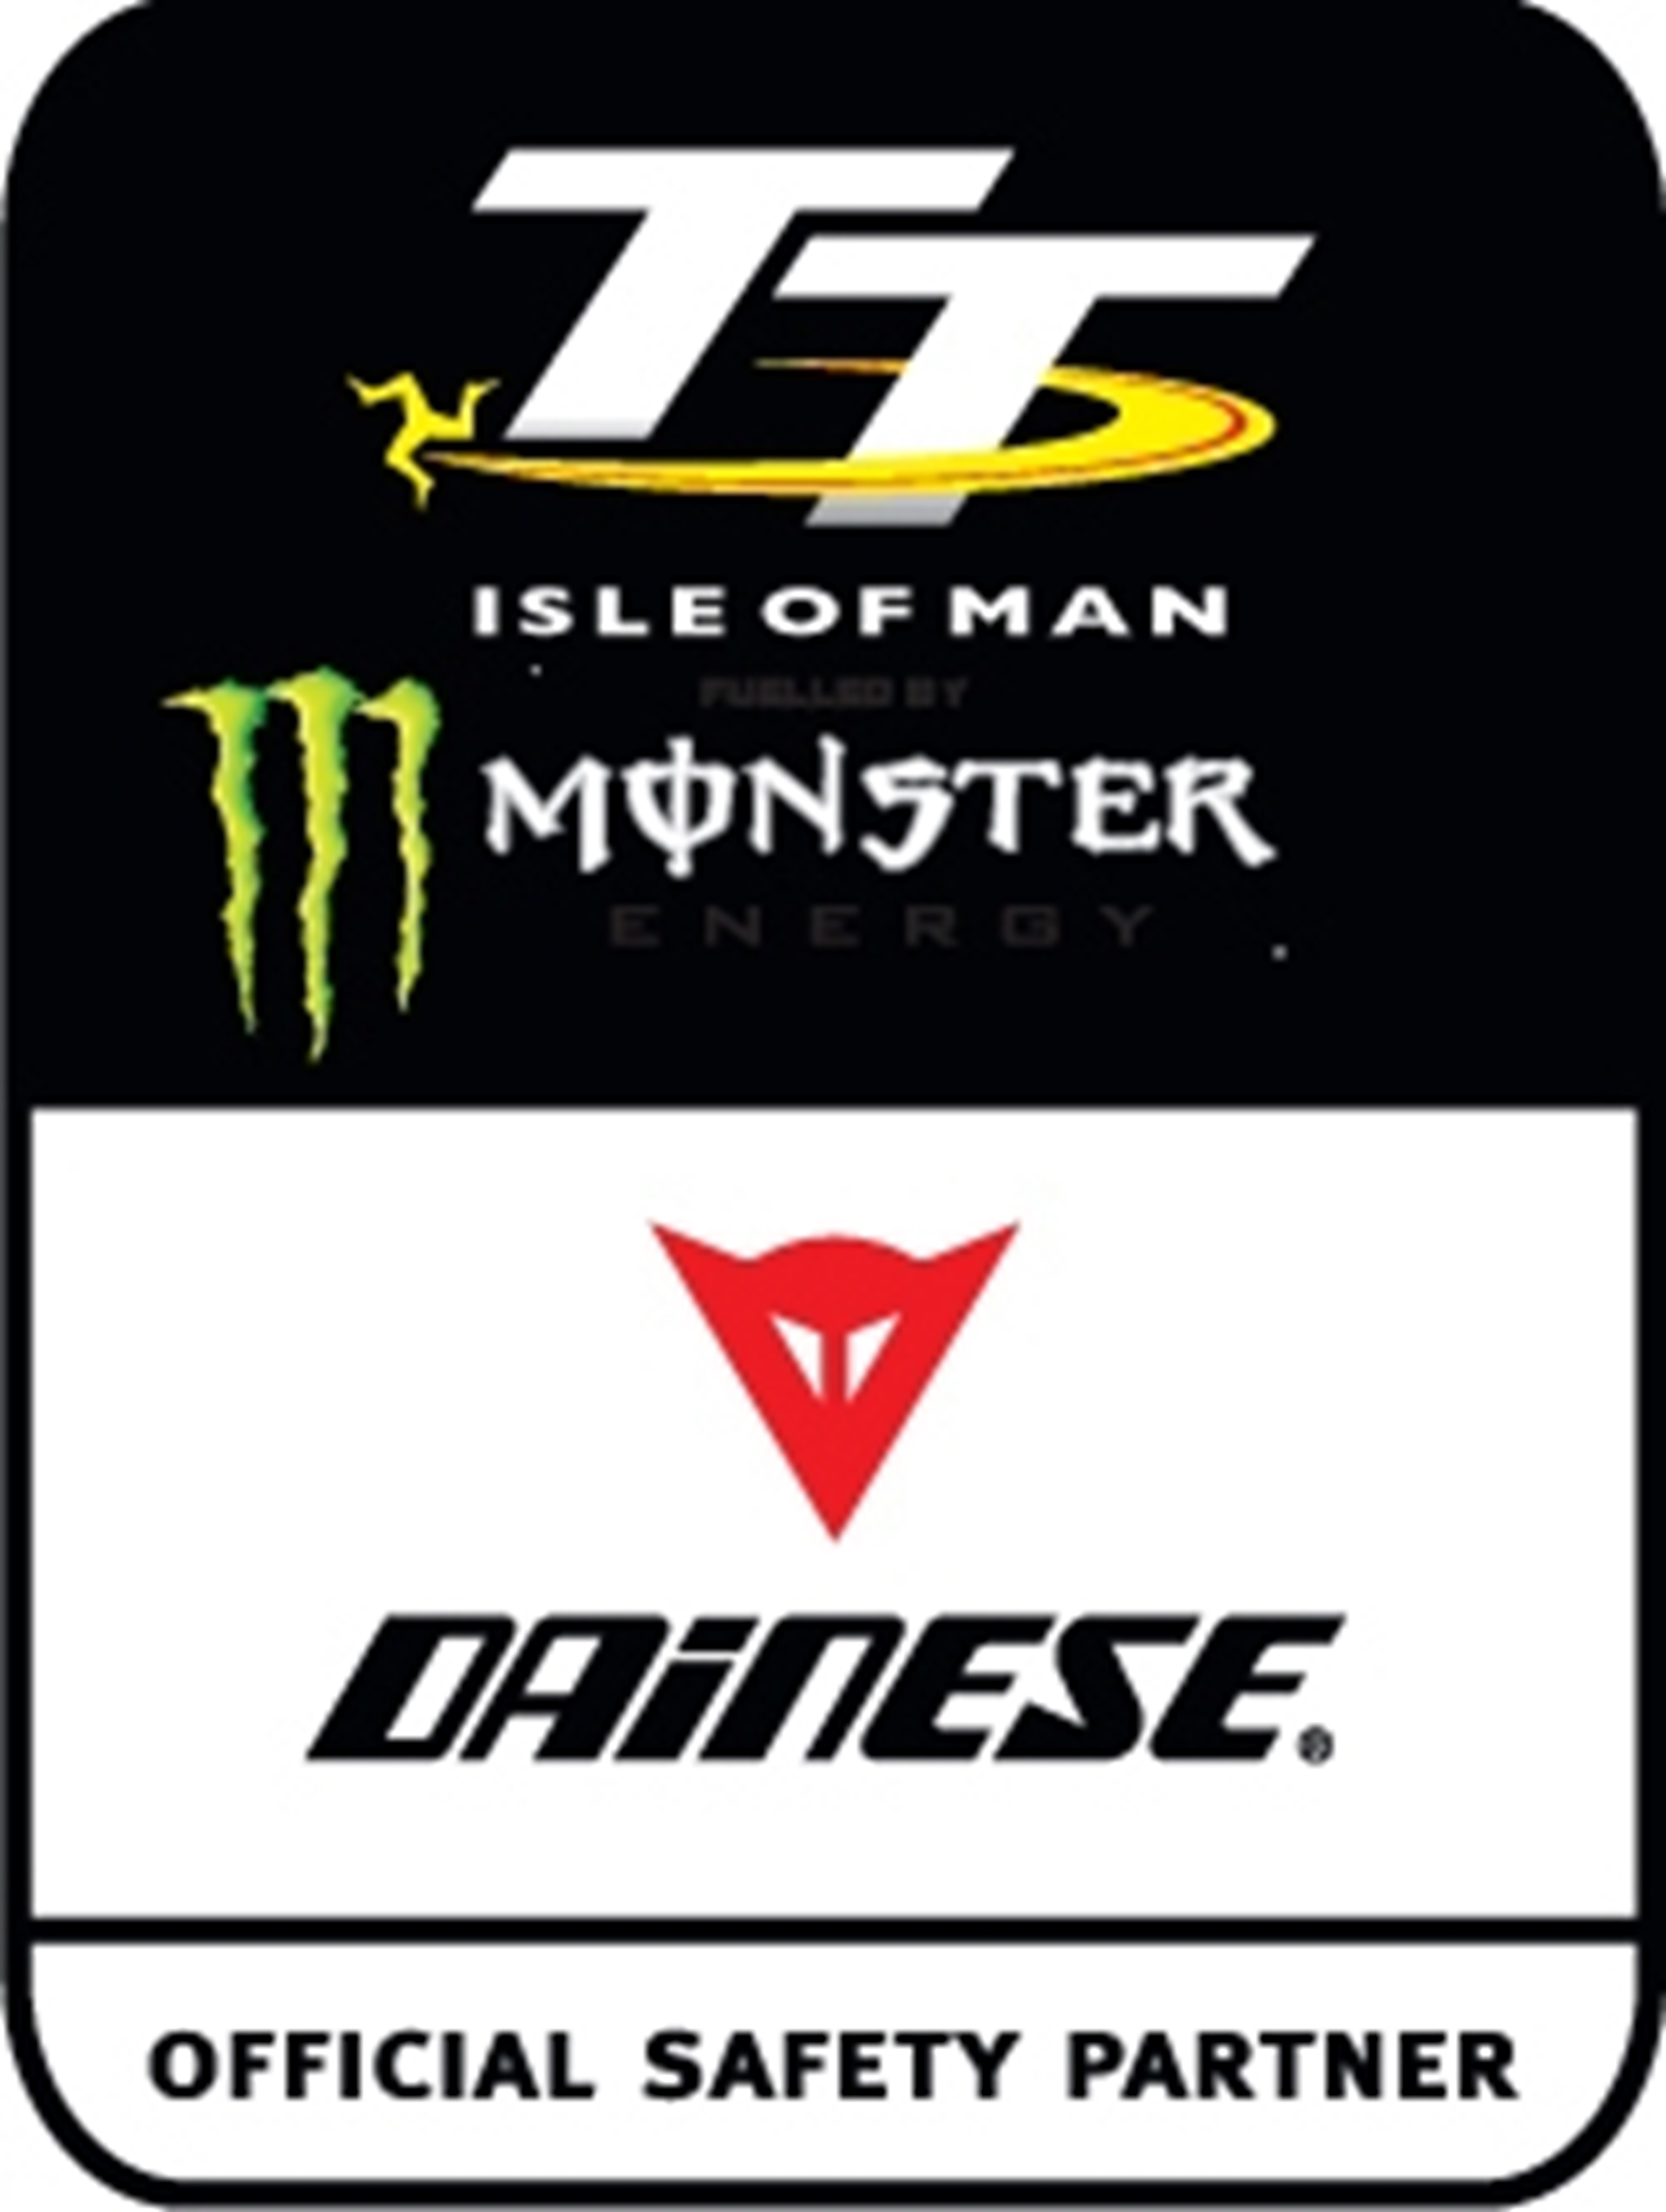 Dainese Official Safety Partner